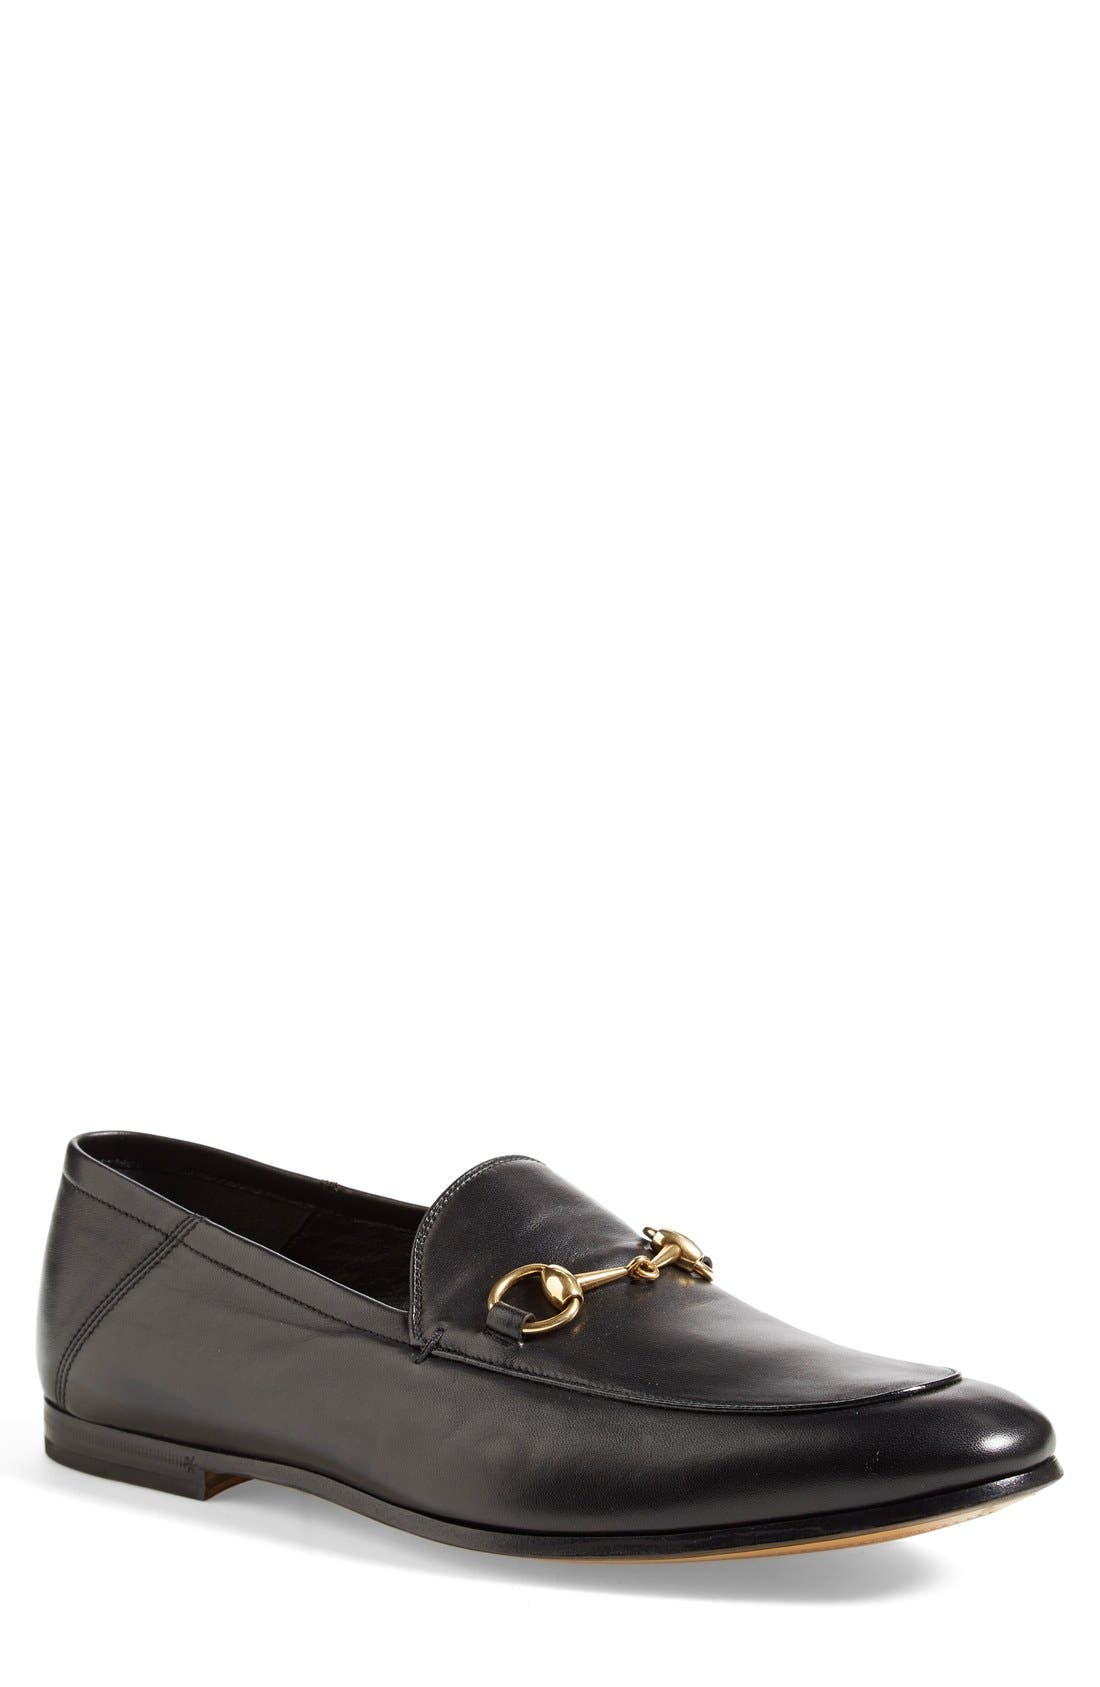 GUCCI Brixton Leather Loafer, Main, color, NERO LEATHER